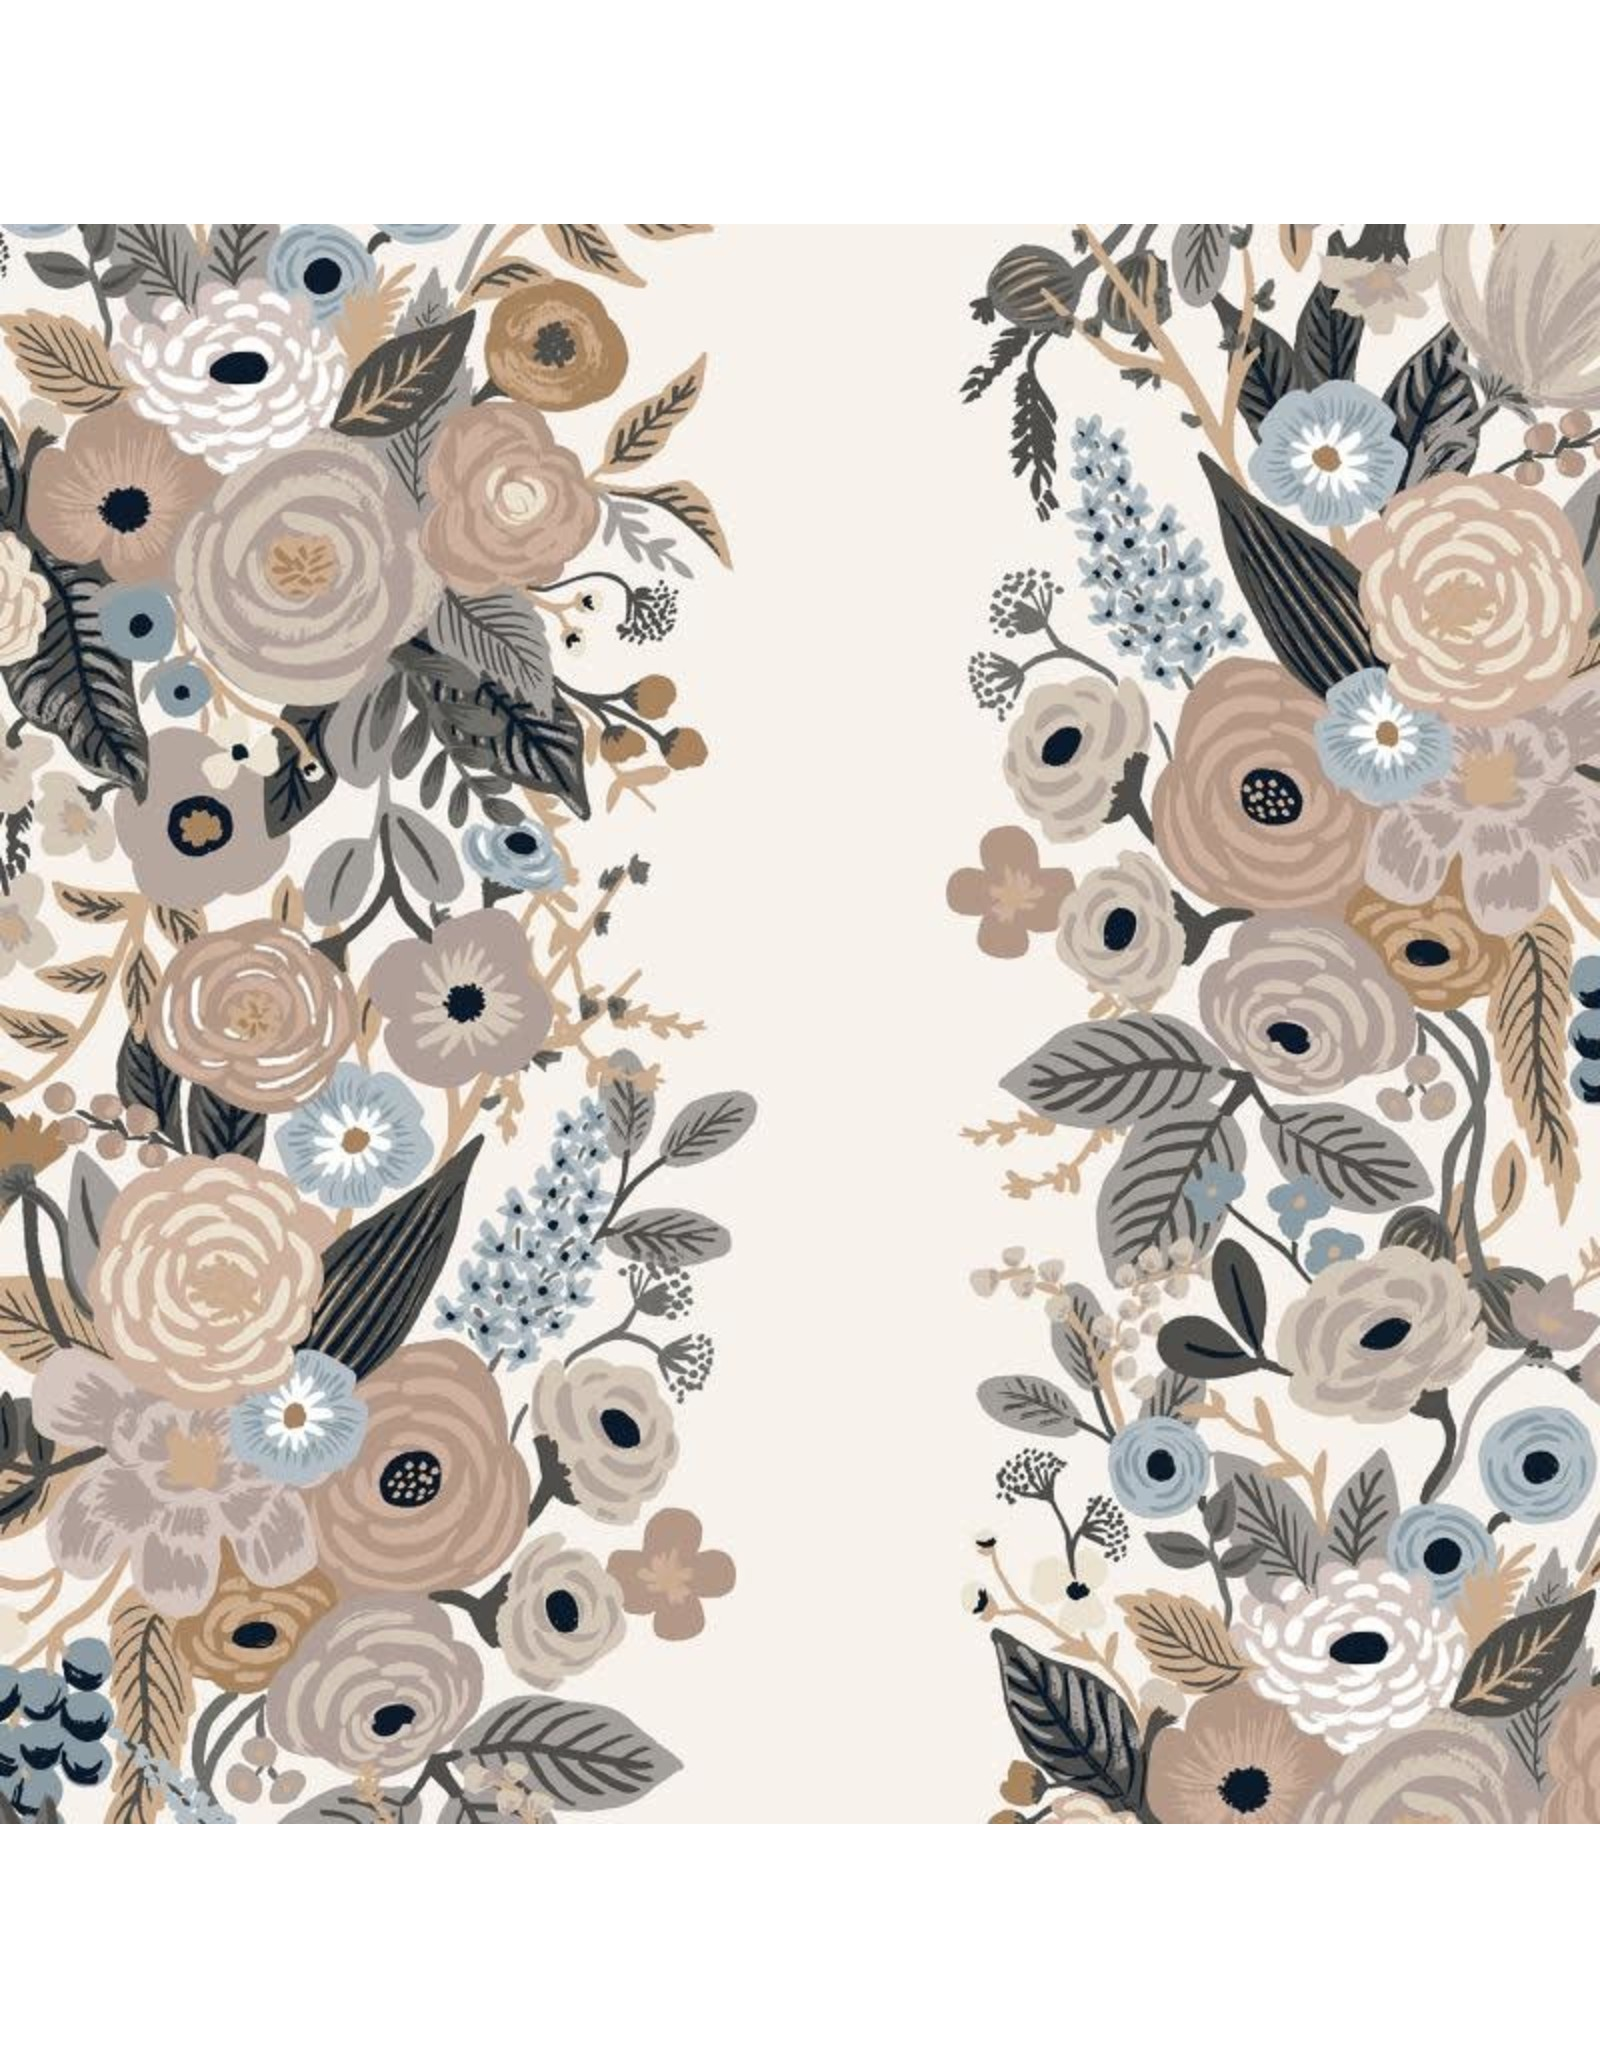 Rifle Paper Co. Garden Party, Garden Party Vines in Linen, Fabric Half-Yards RP101-LM5